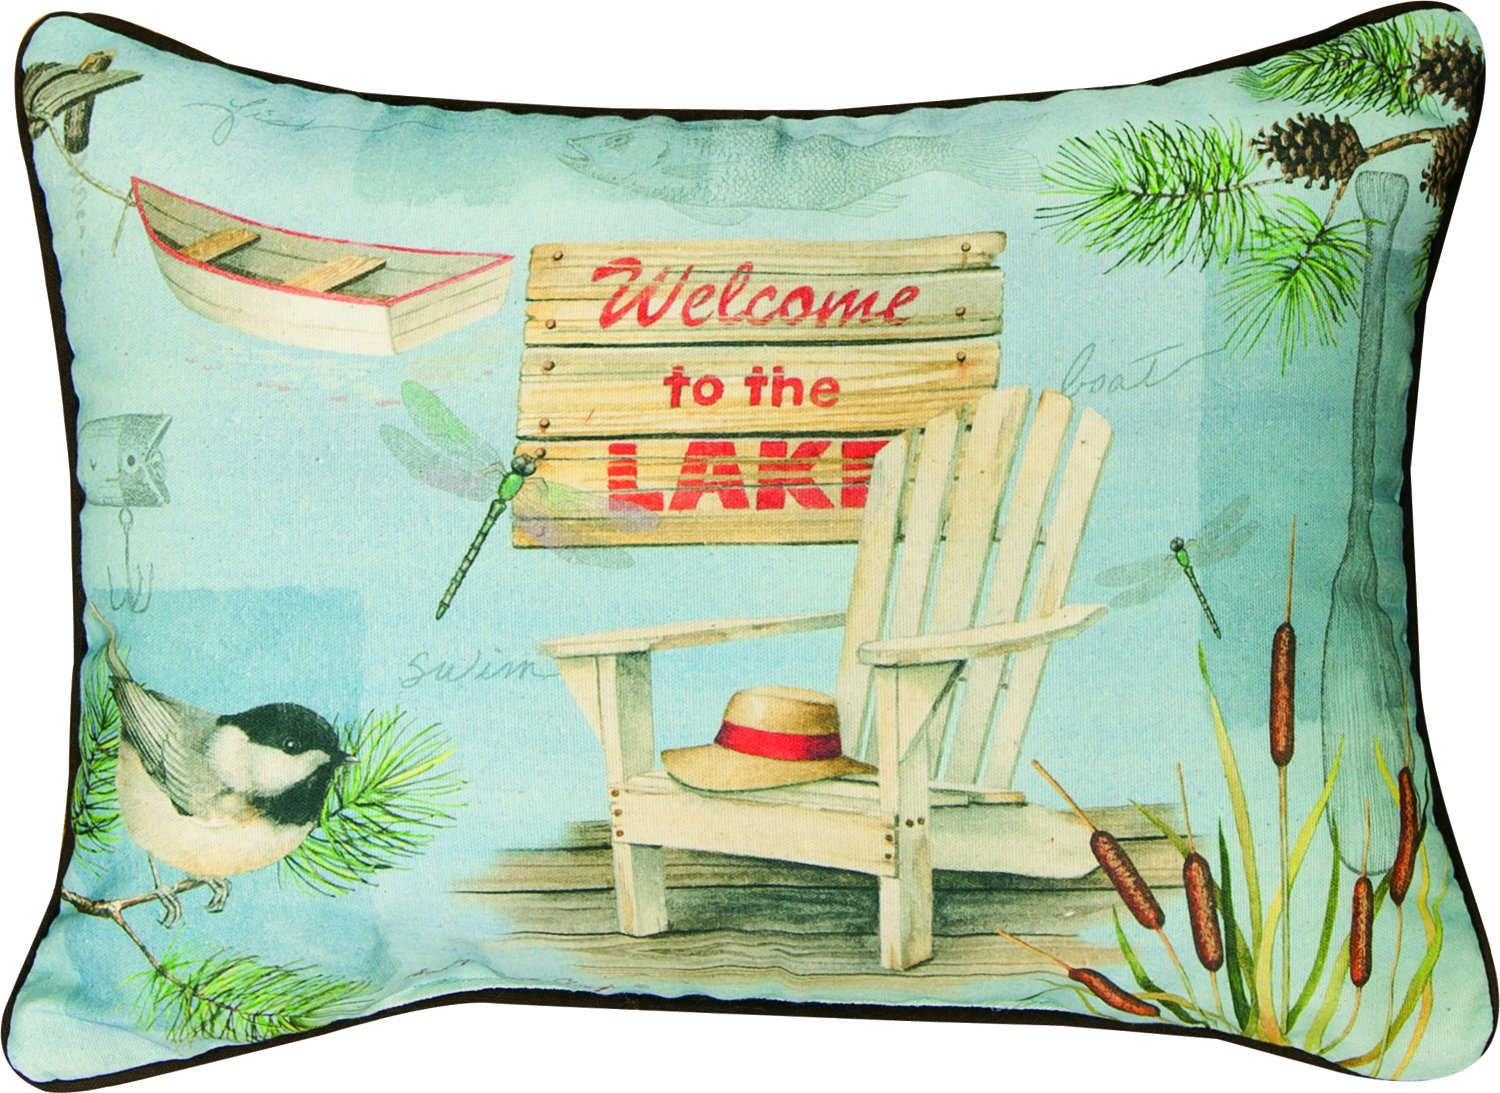 "Manual Woodworkers & Weavers Throw Pillow, 18 x 13"", Lake Time Welcome to The Lake"